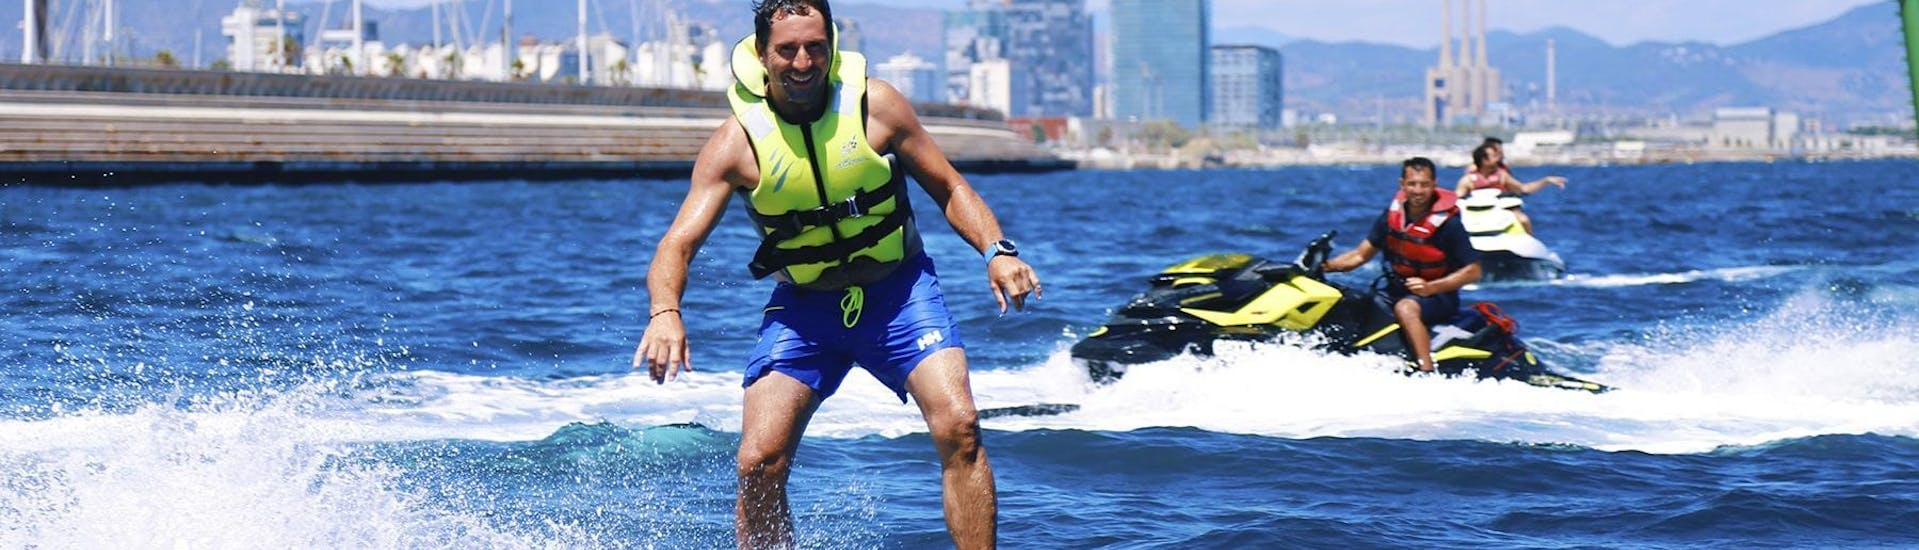 A Man is mastering the Flyboarding & Hoverboarding - Barcelona under the supervision of an experienced instructor from Five Star Barcelona.